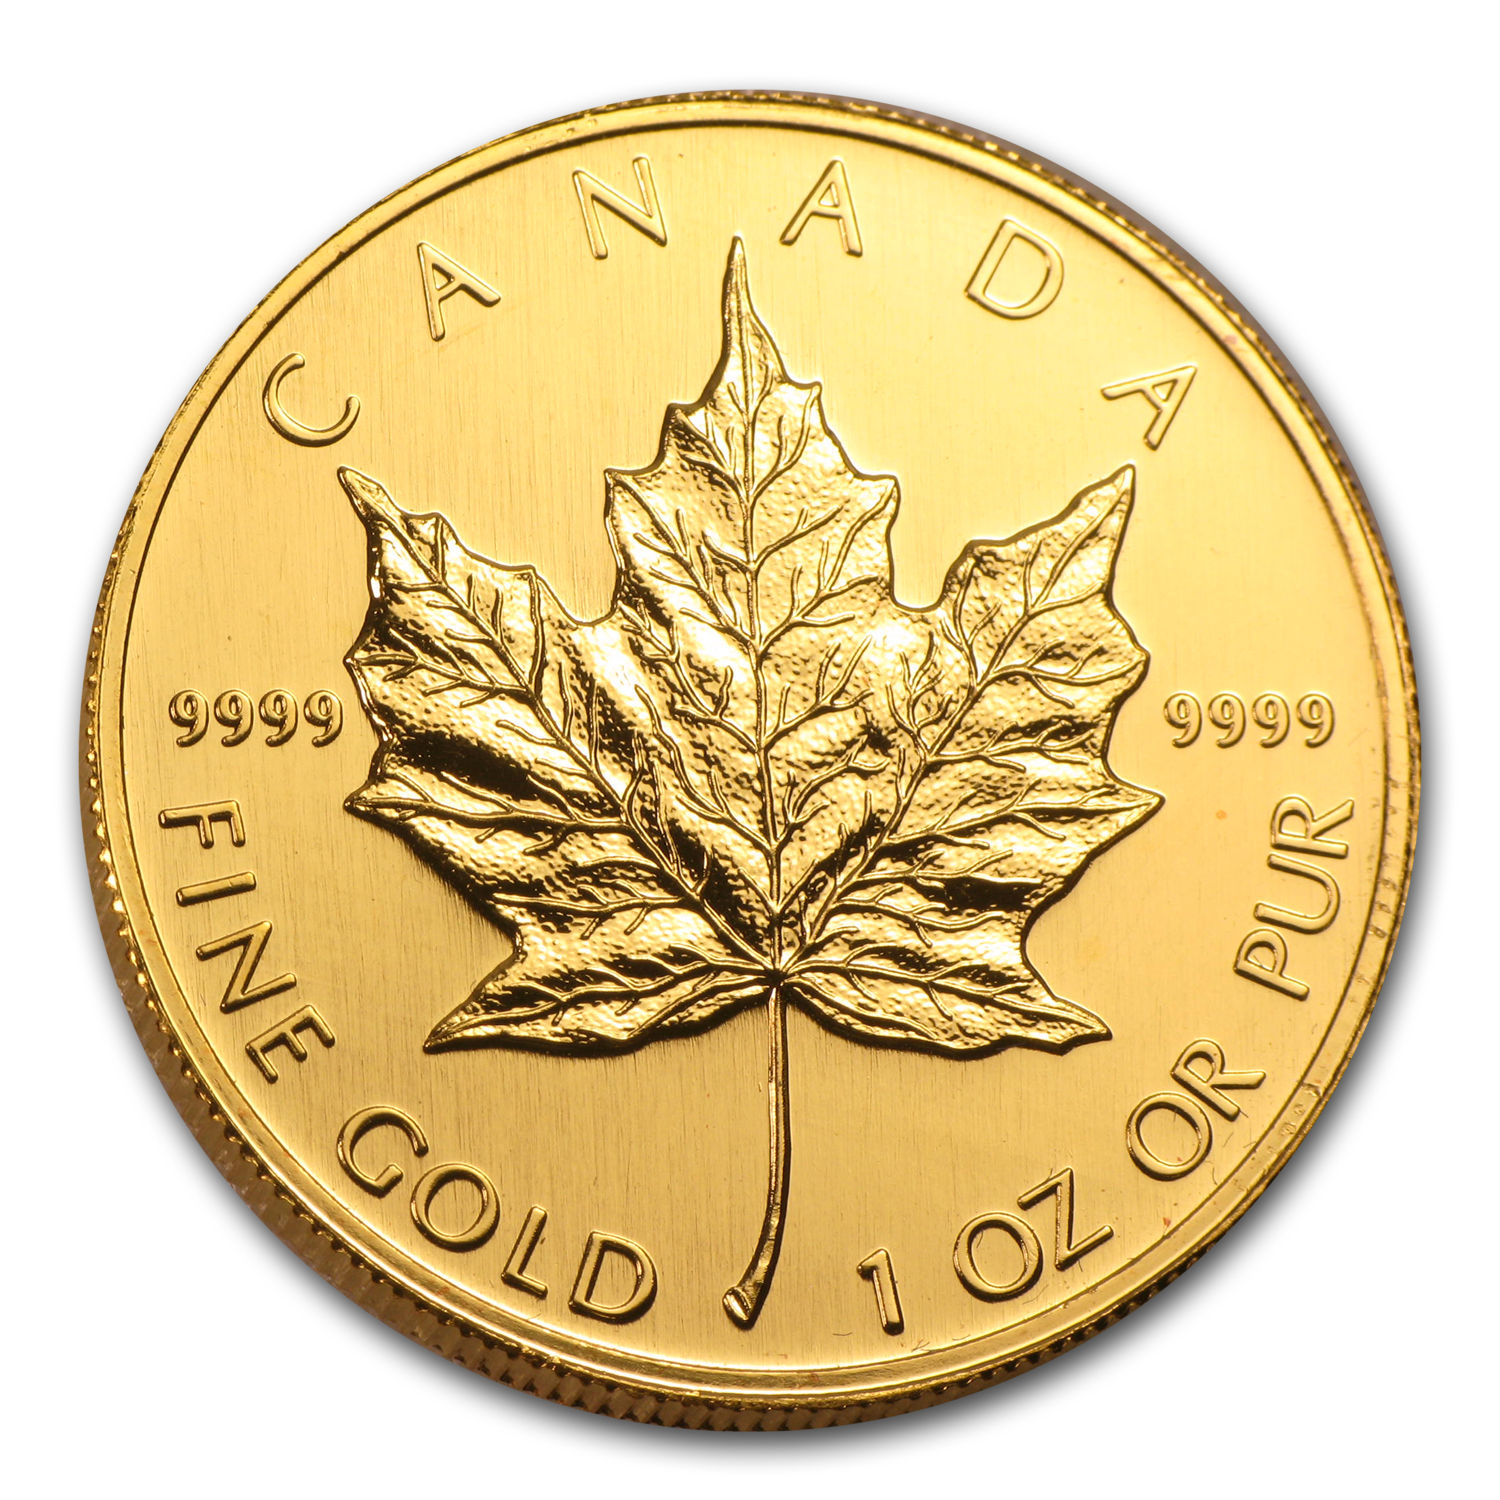 2001 1 oz Gold Canadian Maple Leaf - Brilliant Uncirculated